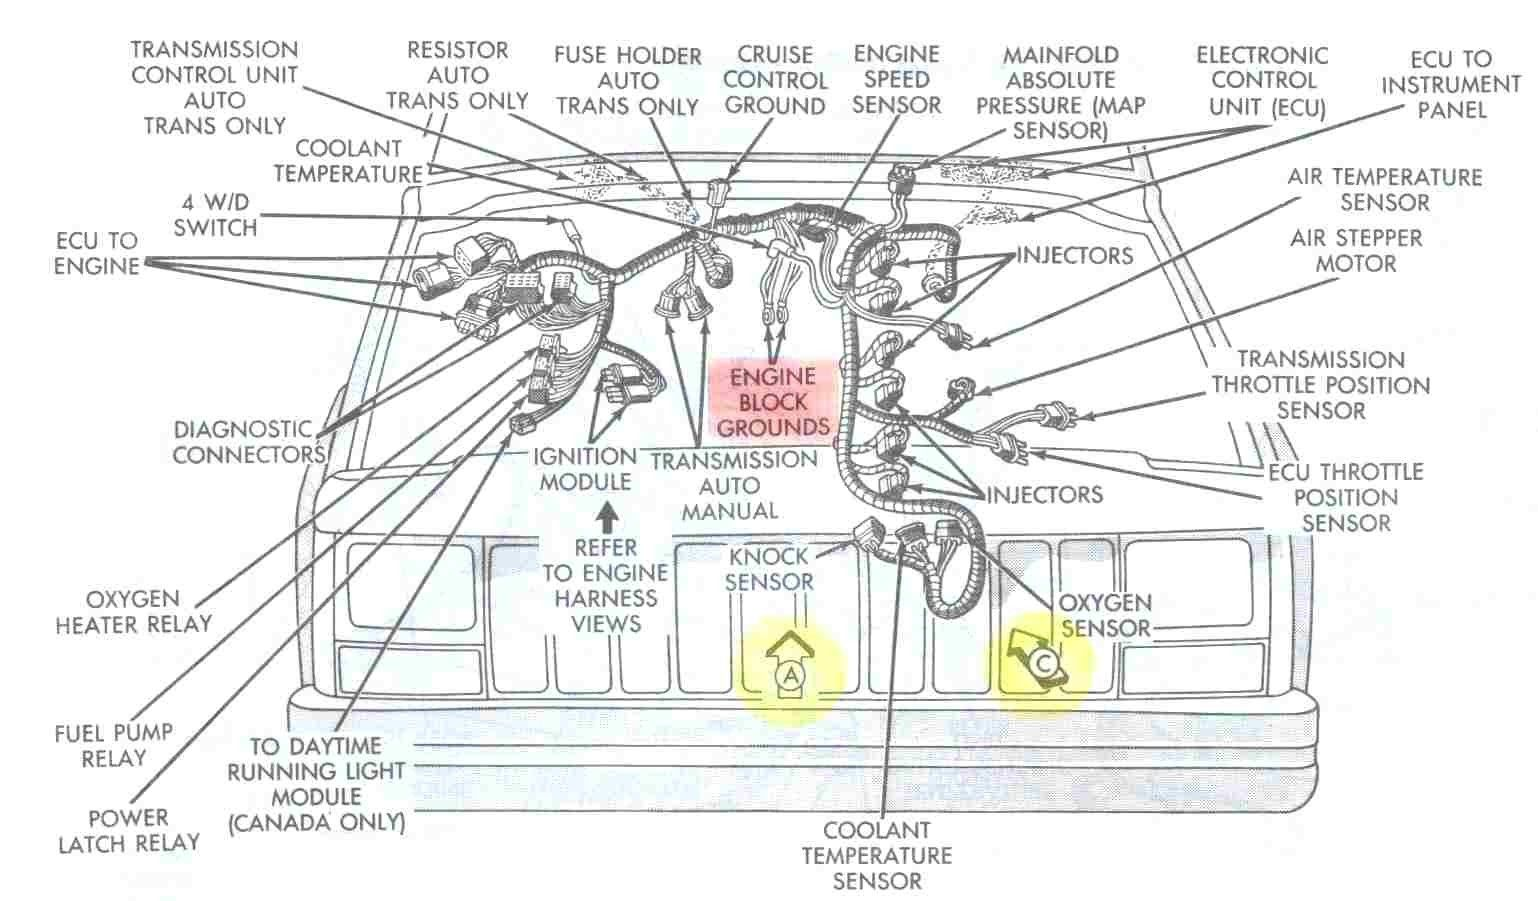 jeep engine wiring harness - wiring diagram log heat-push-a -  heat-push-a.superpolobio.it  superpolobio.it